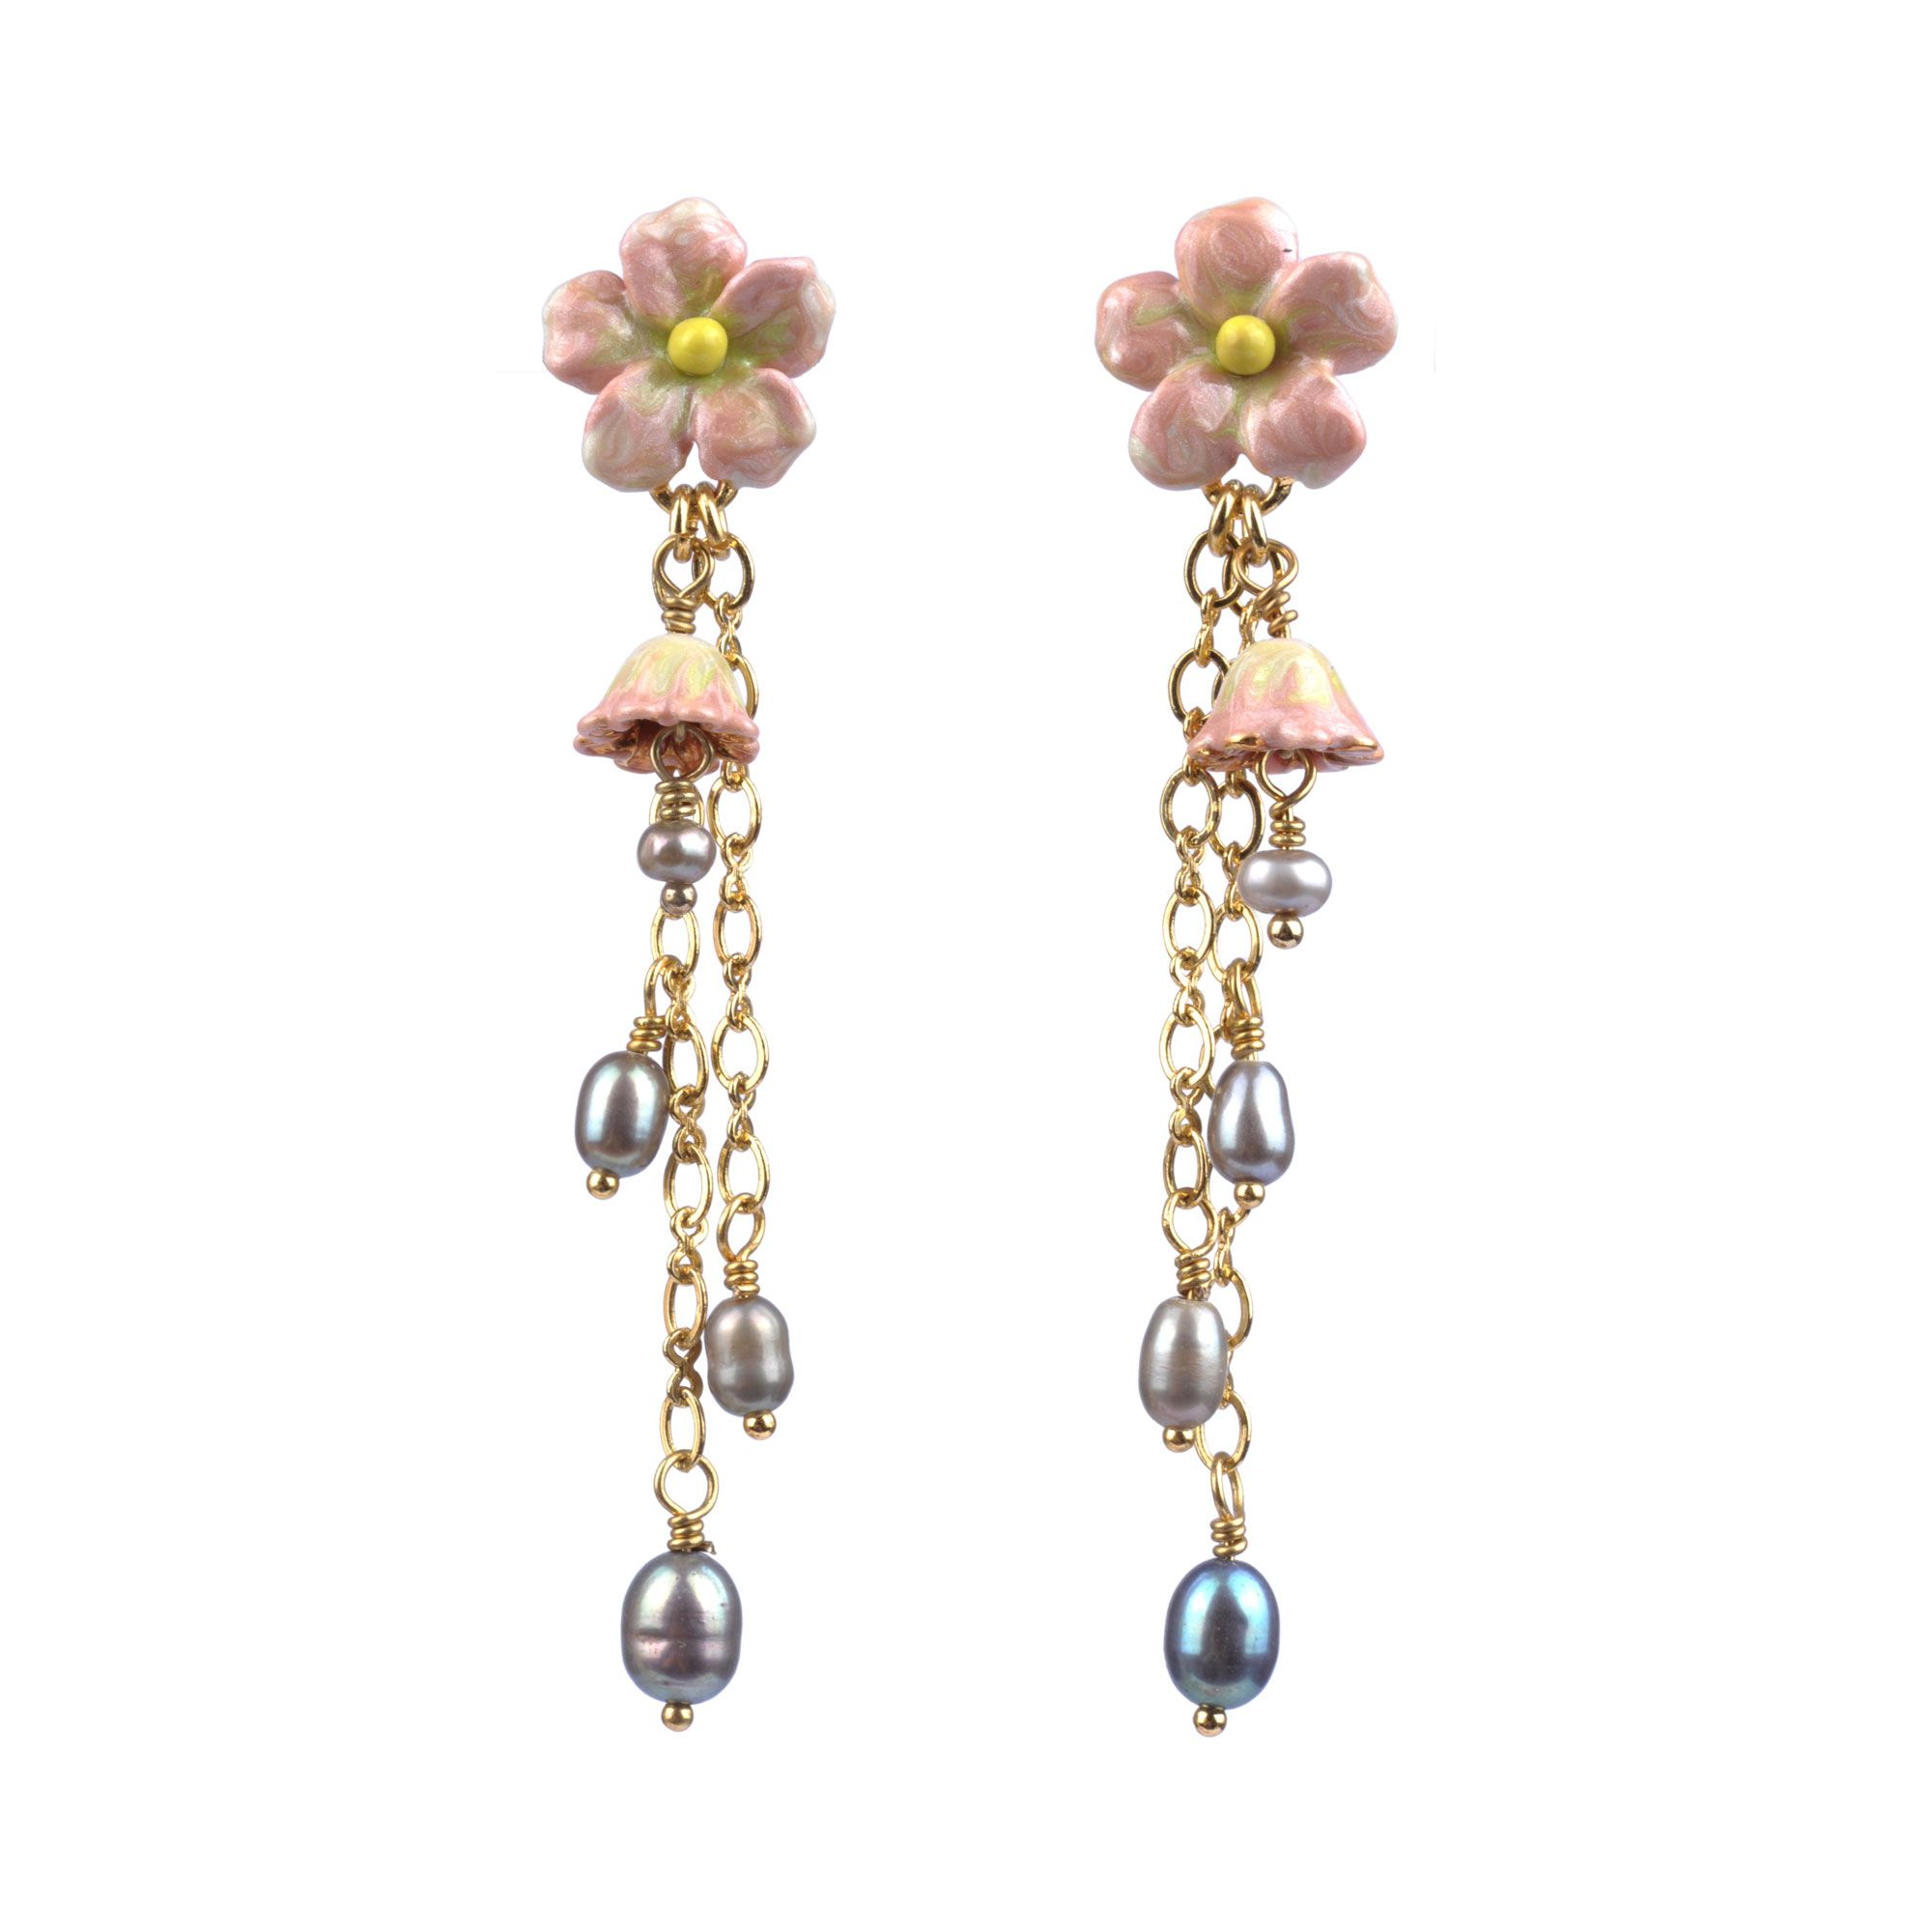 Jardins secrets earrings